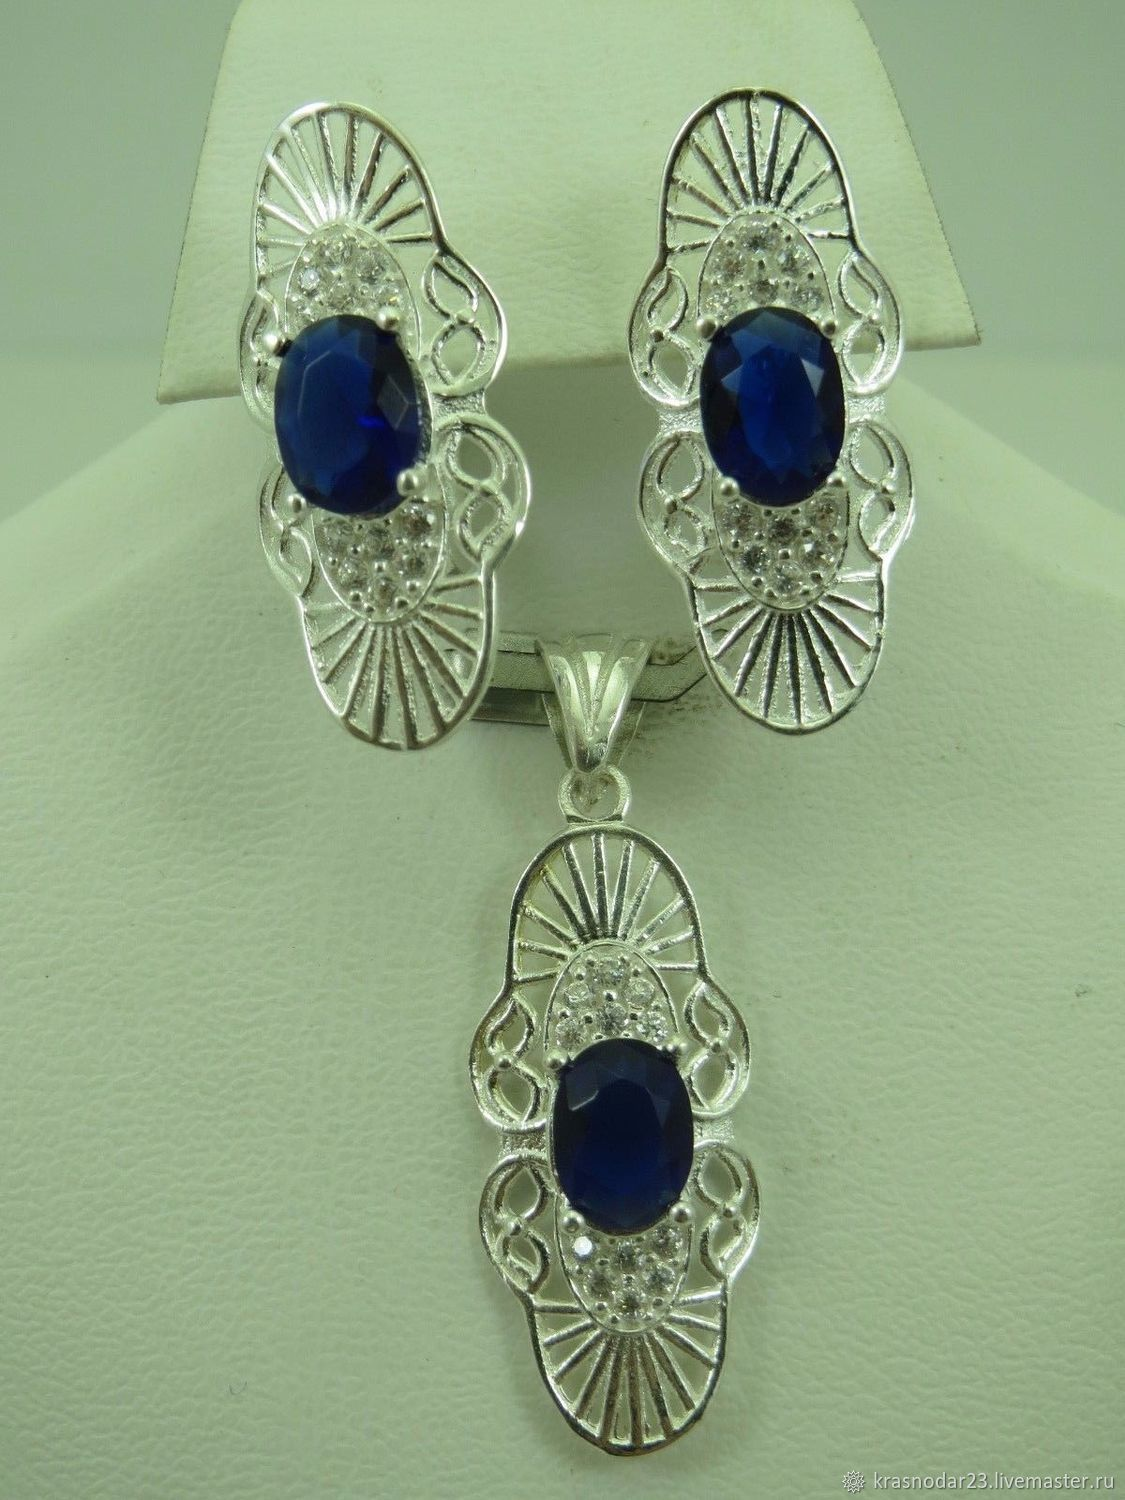 Set (earrings and pendant) made of SILVER 925 is decorated with a nano-sapphire.